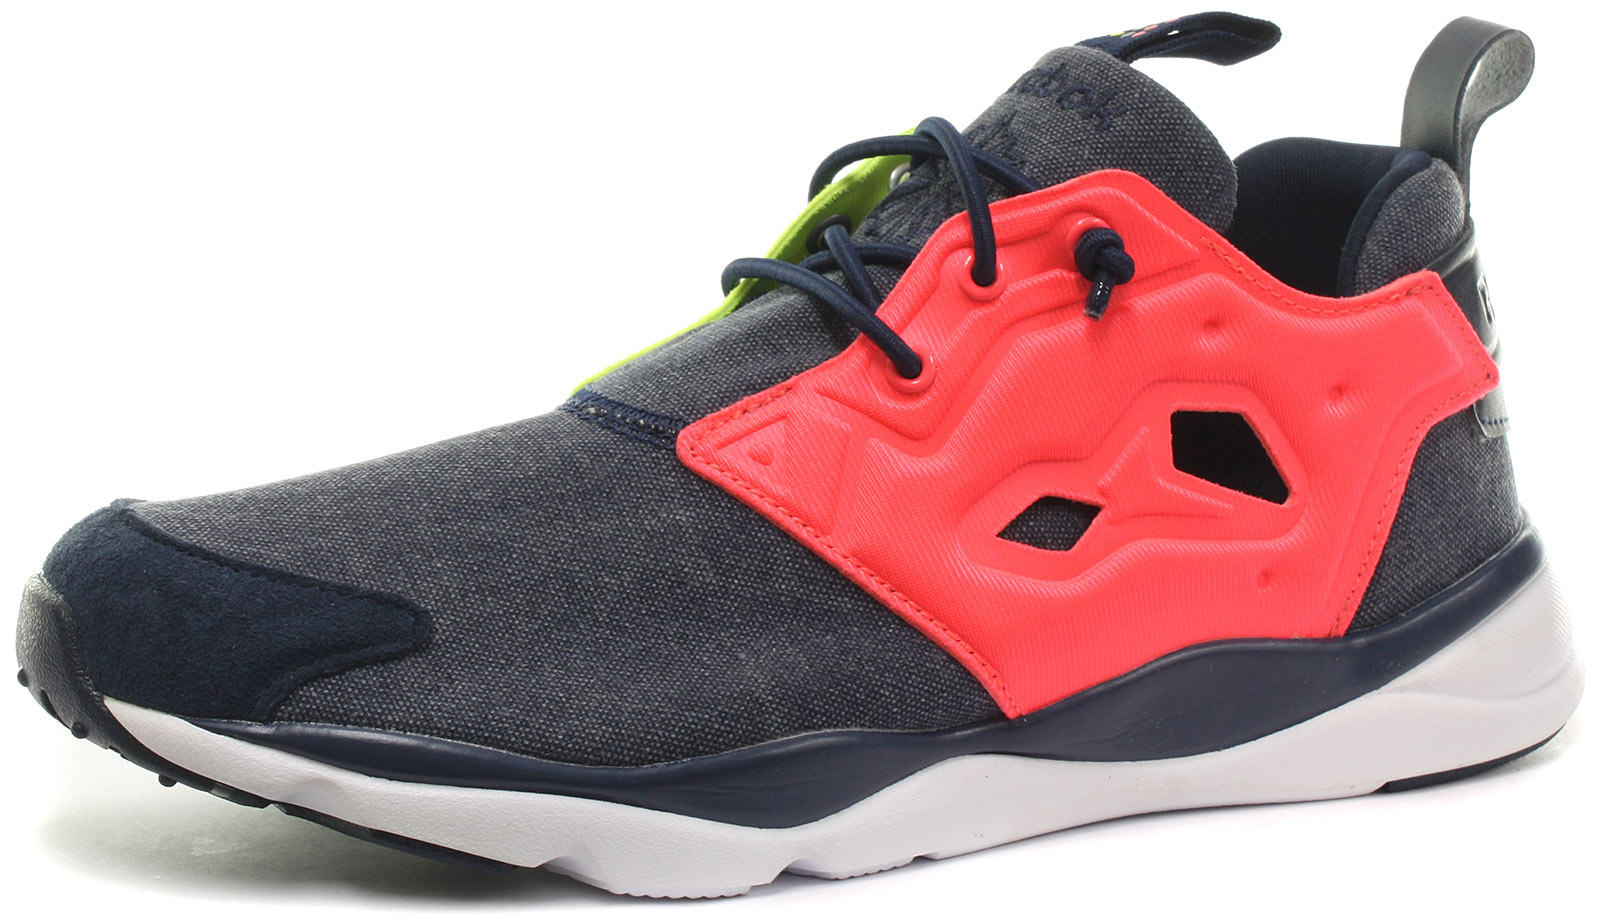 96bc2291d57 Image is loading Reebok-Classic-Furylite -Asymmetrical-Navy-Womens-Trainers-ALL-